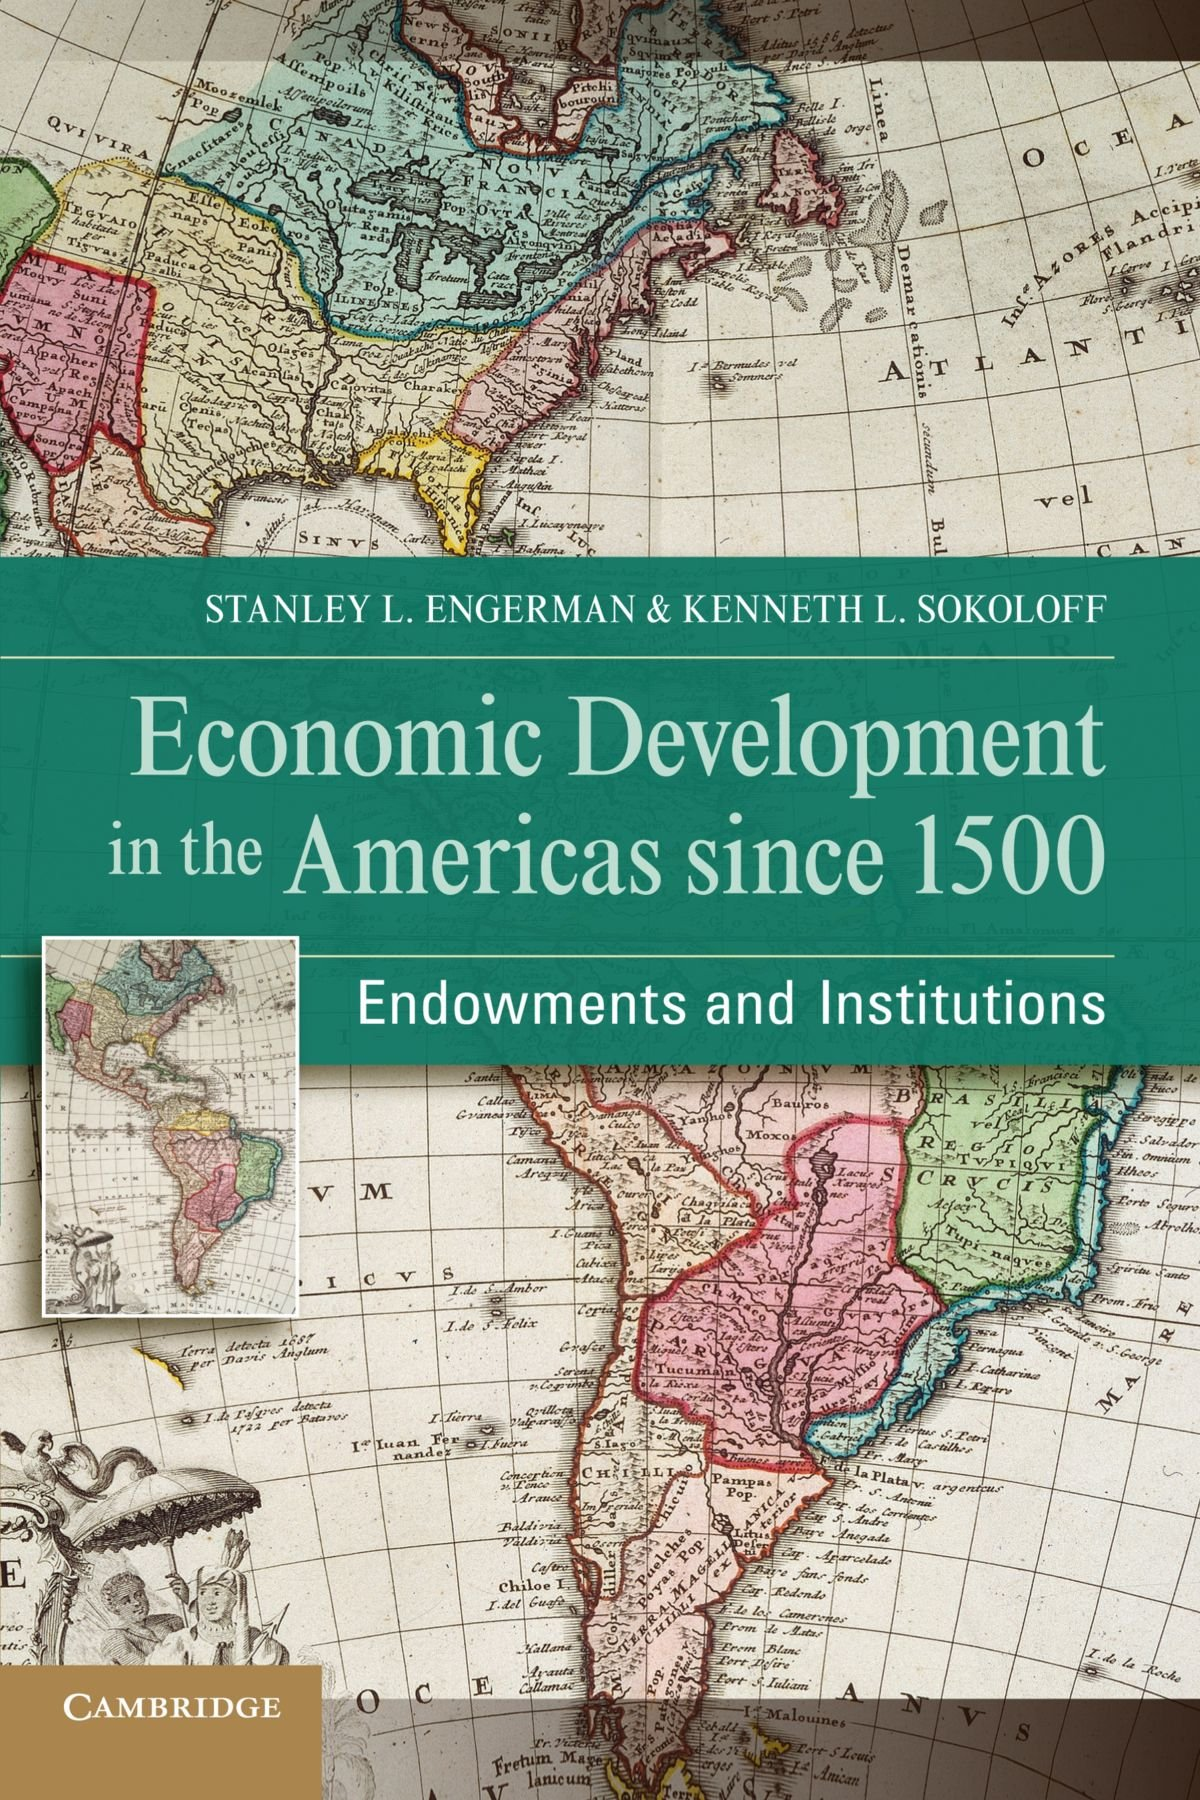 Economic Development in the Americas since 1500: Endowments and Institutions (Nber Series on Long-term Factors in Economic Development) pdf epub